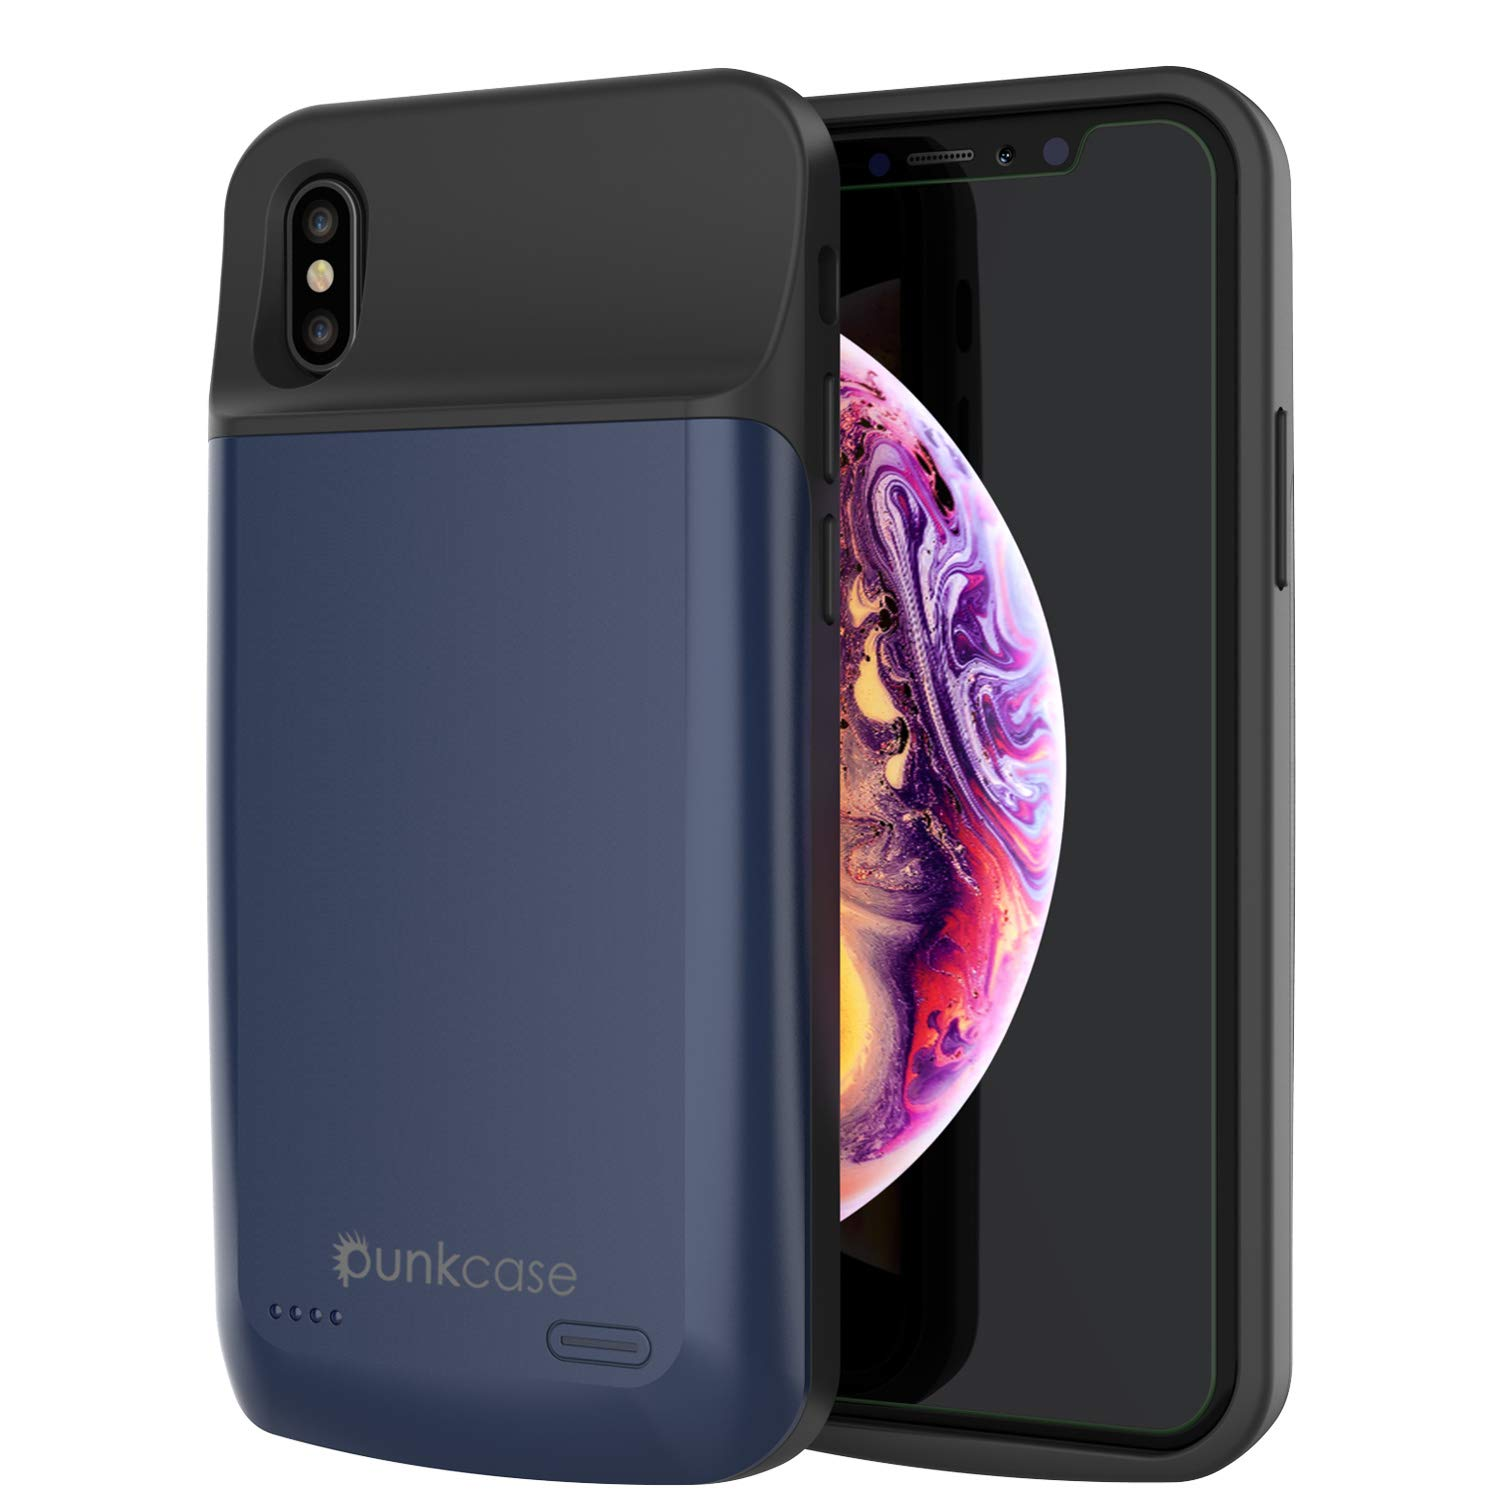 Funda Con Bateria de 6000mah para Apple Iphone Xs Max PUNKCASE [7L6J3ML6]